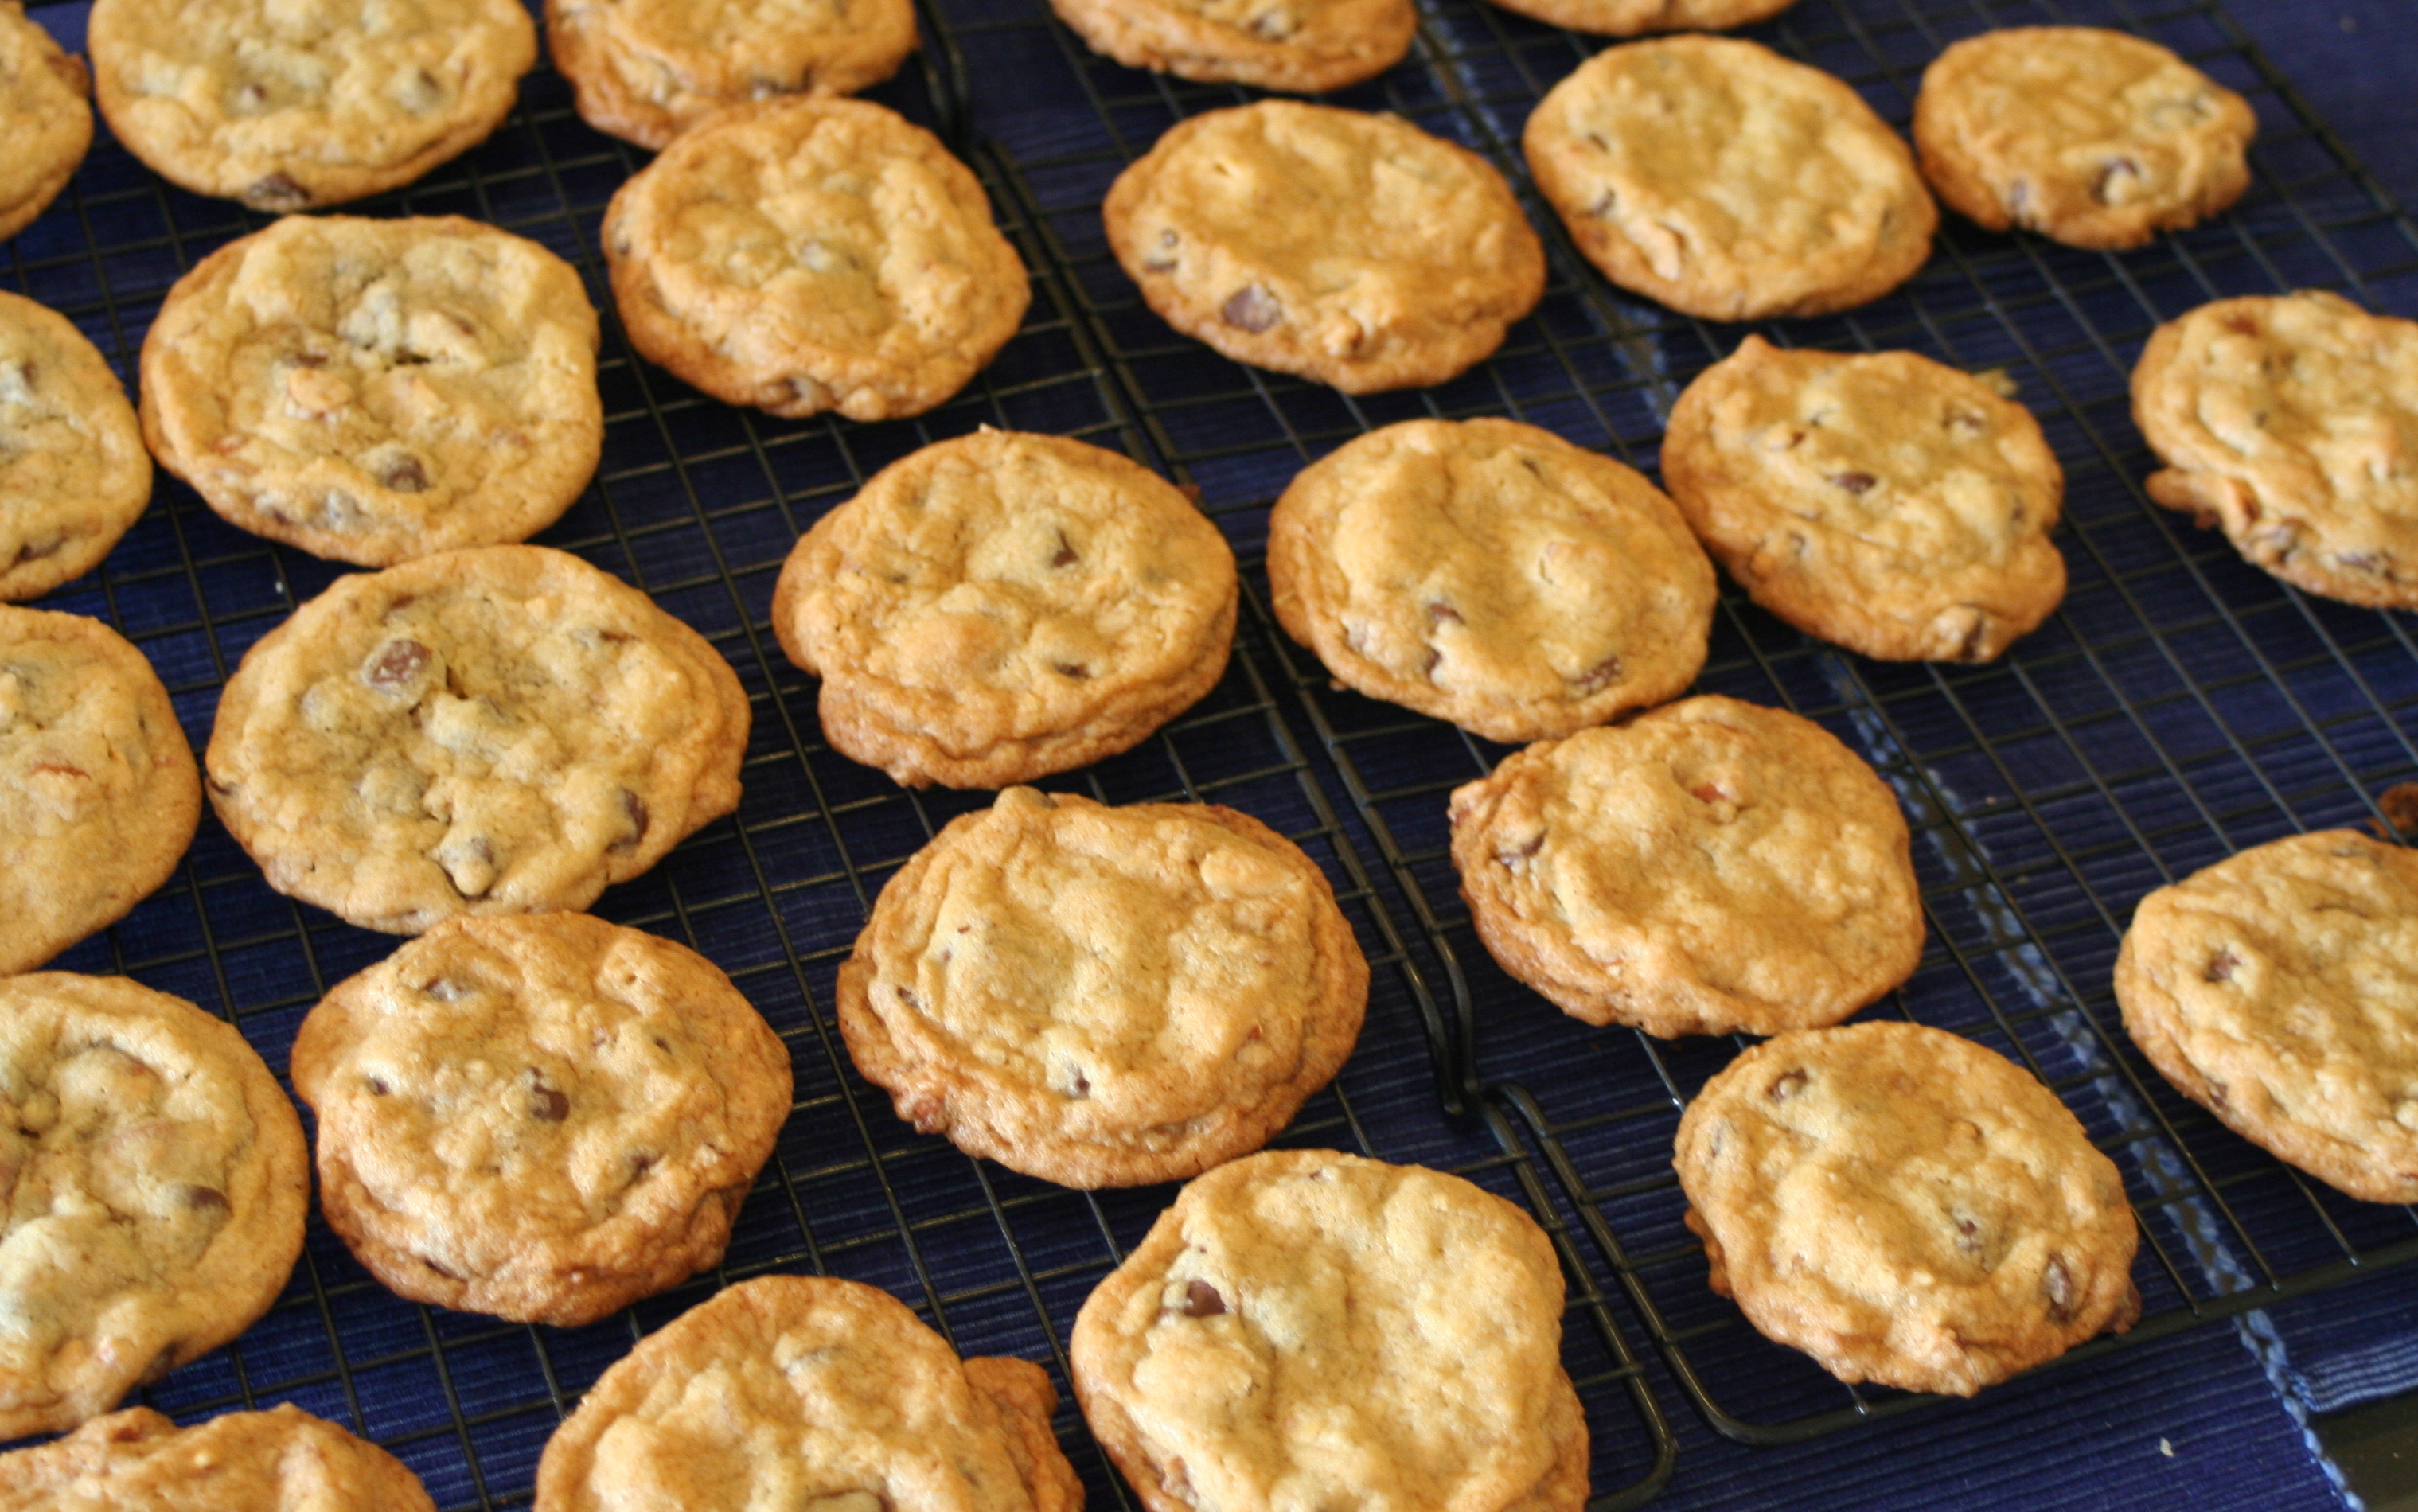 Description Almond chocolate chip cookies on wire rack, June 2009.jpg